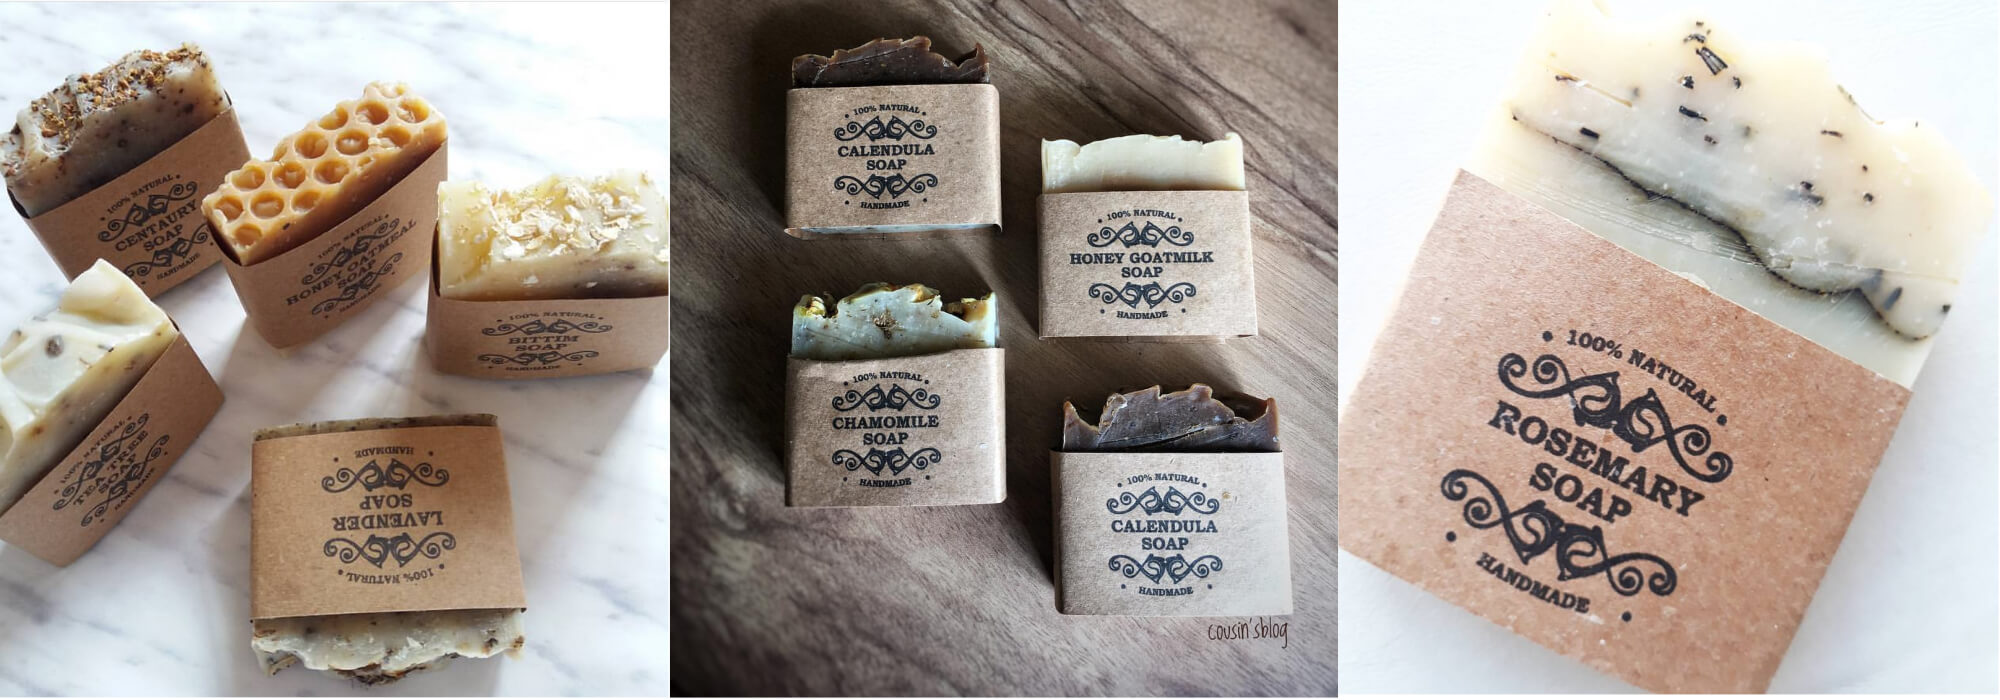 Private Label Soap Wholesale - All Natural Soap Bars